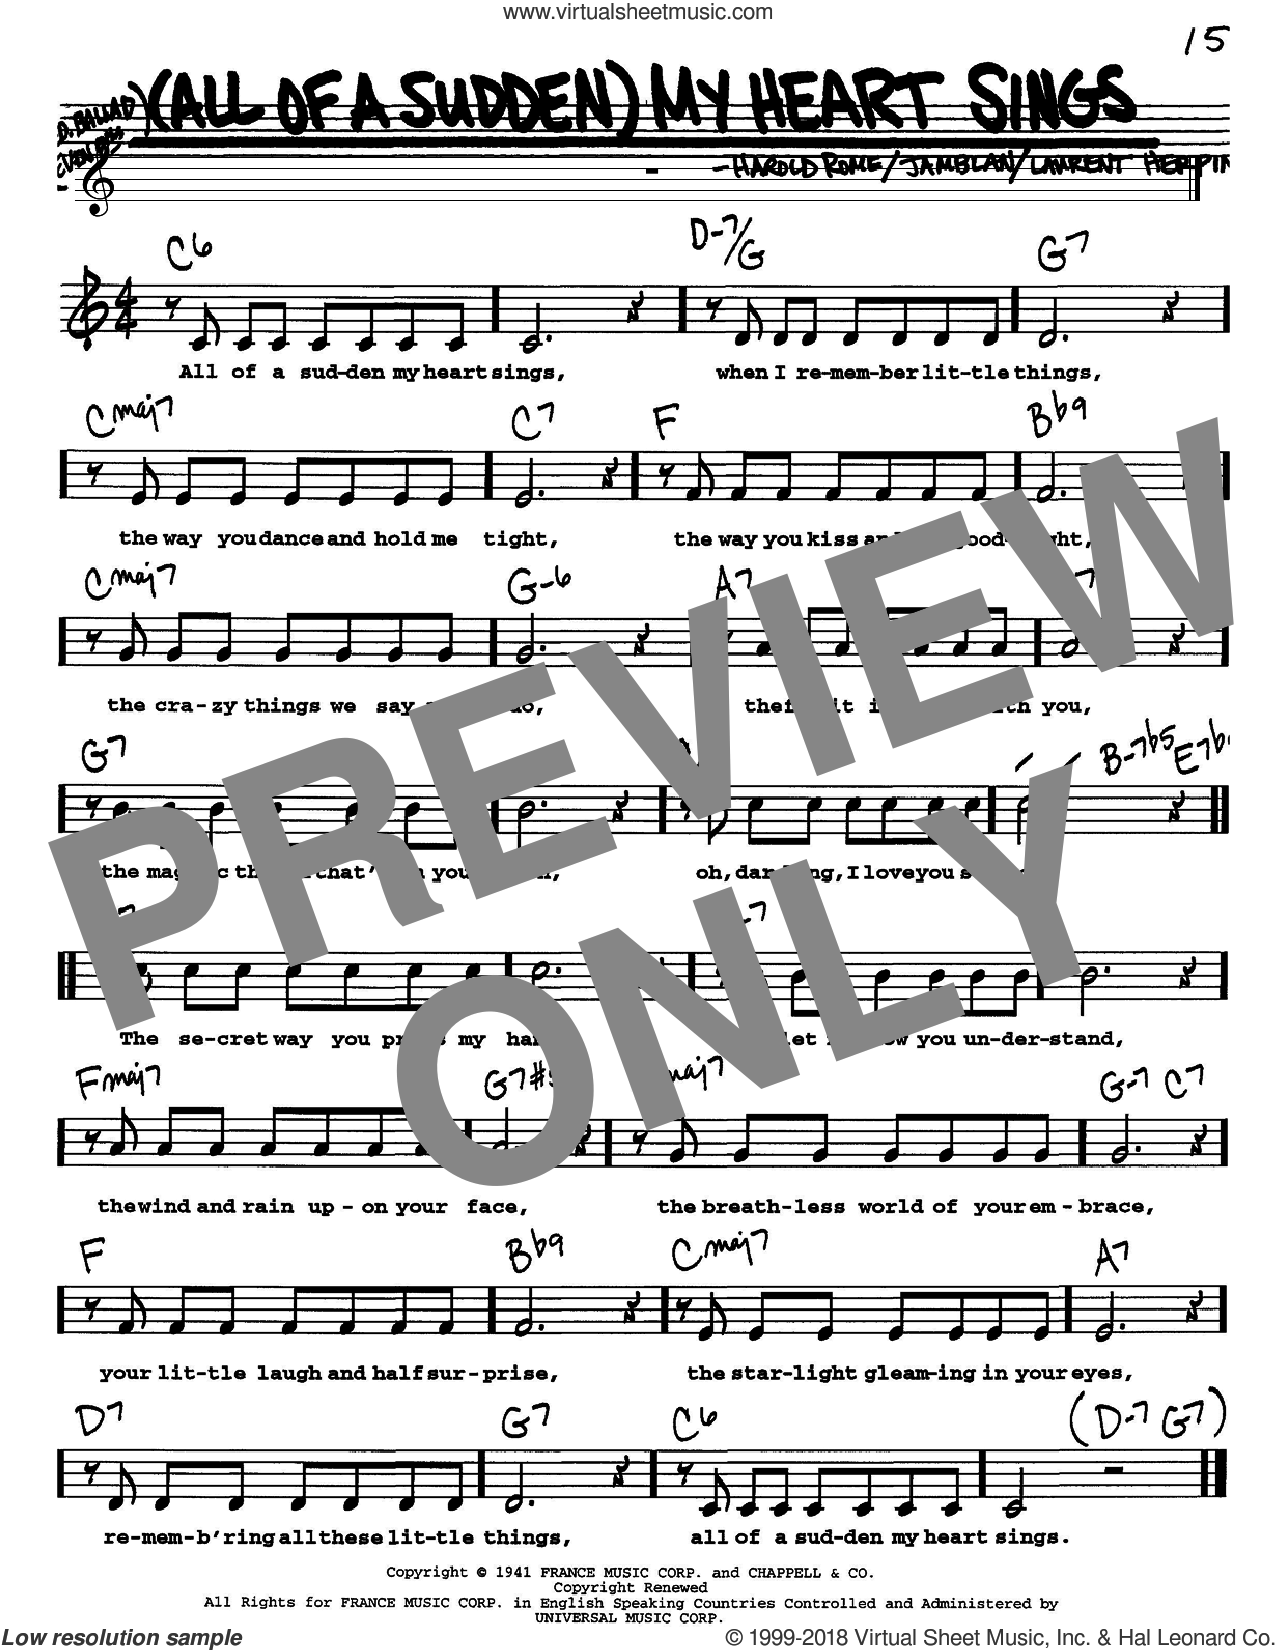 (All Of A Sudden) My Heart Sings sheet music for voice and other instruments  by Paul Anka, Harold Rome, Jamblan and Laurent Herpin, intermediate skill level